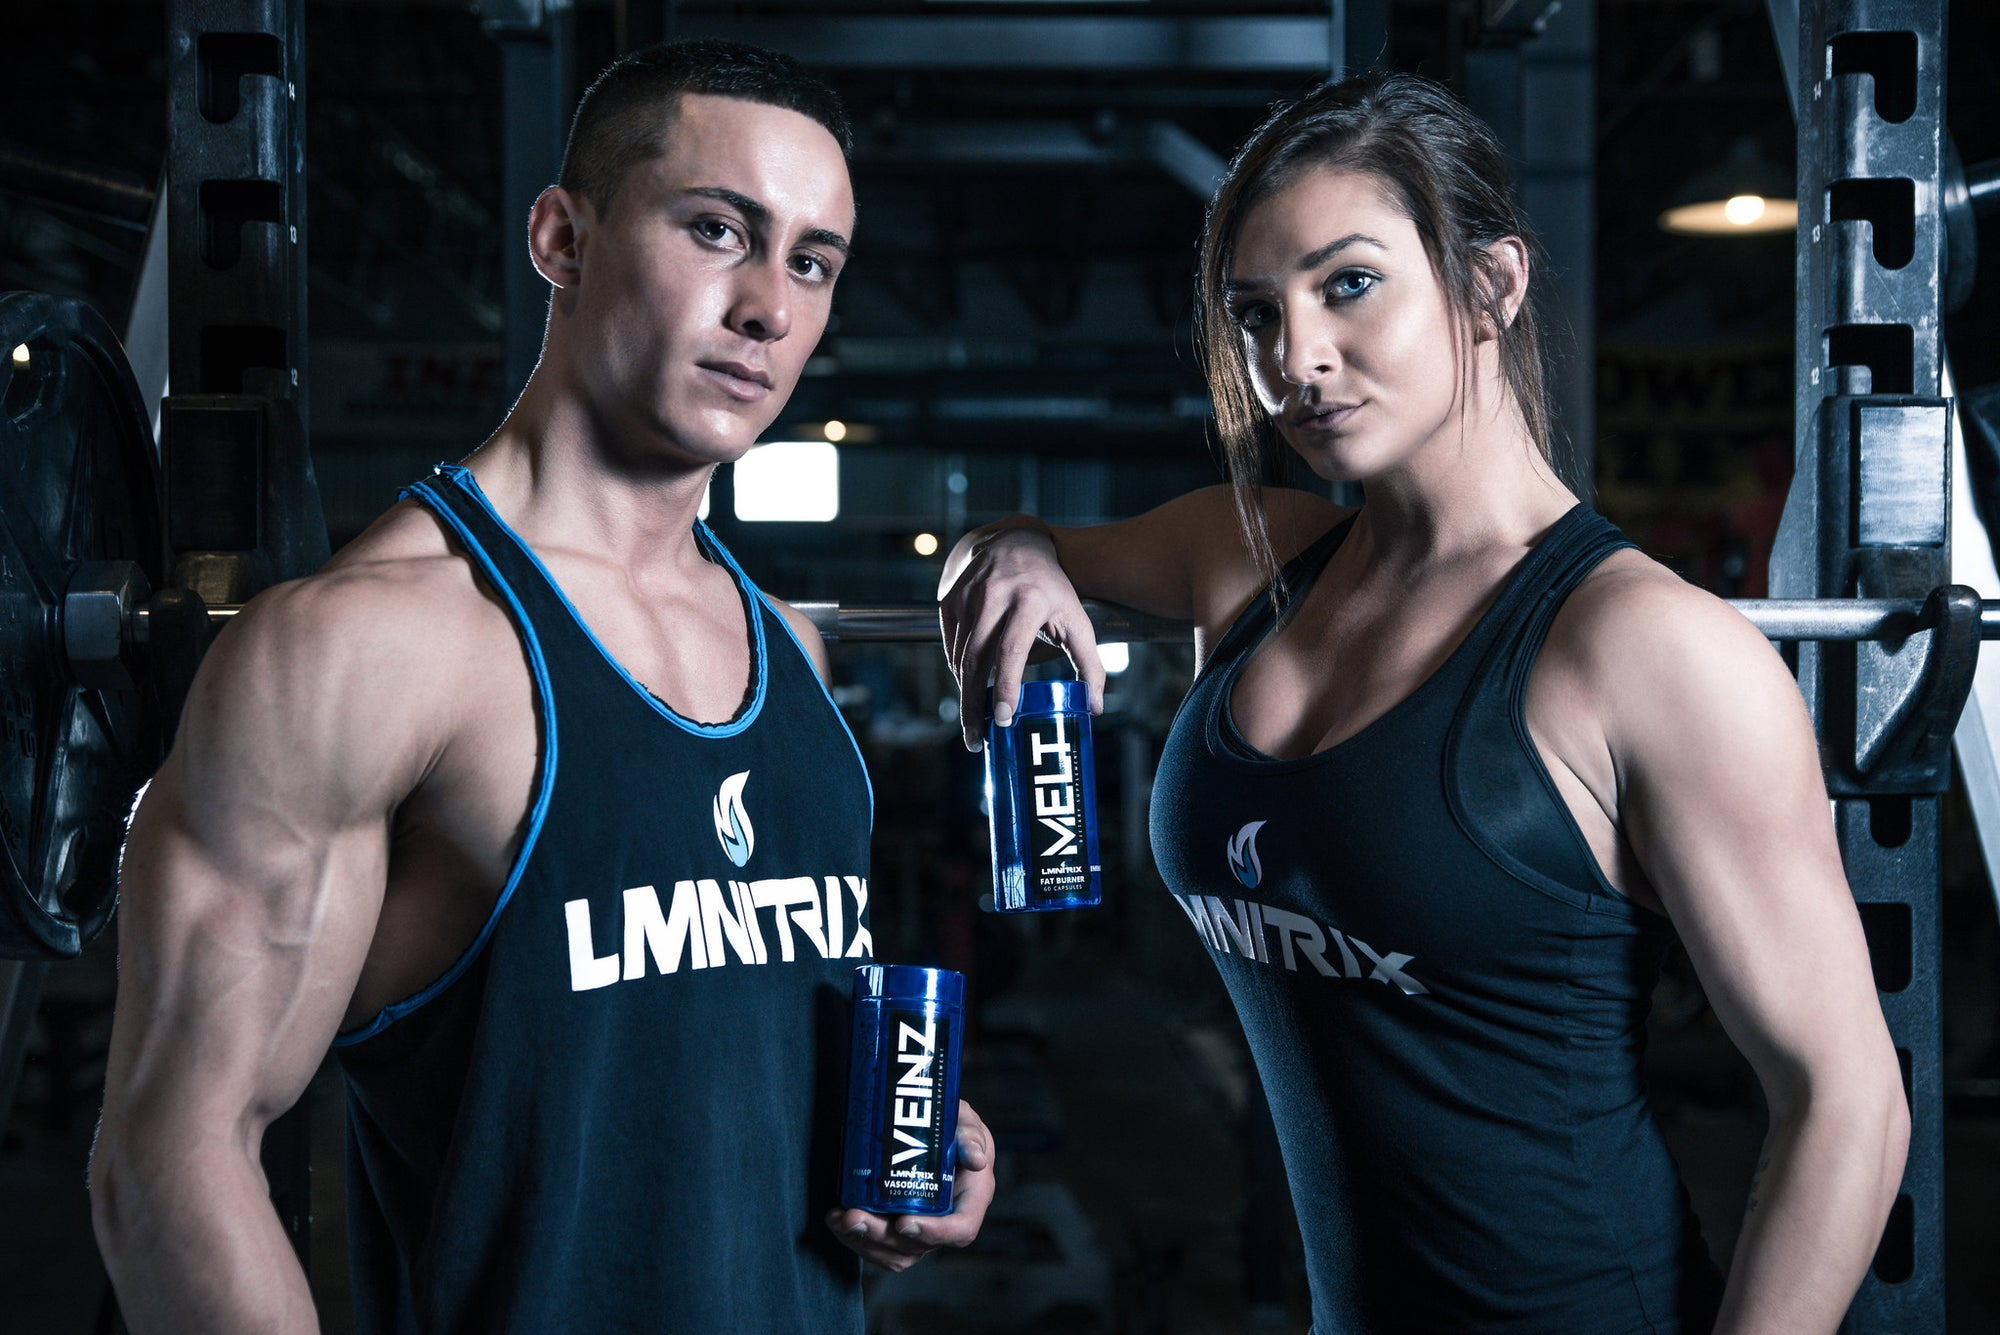 Top 5 Reasons Having a Swolemate ROCKS!